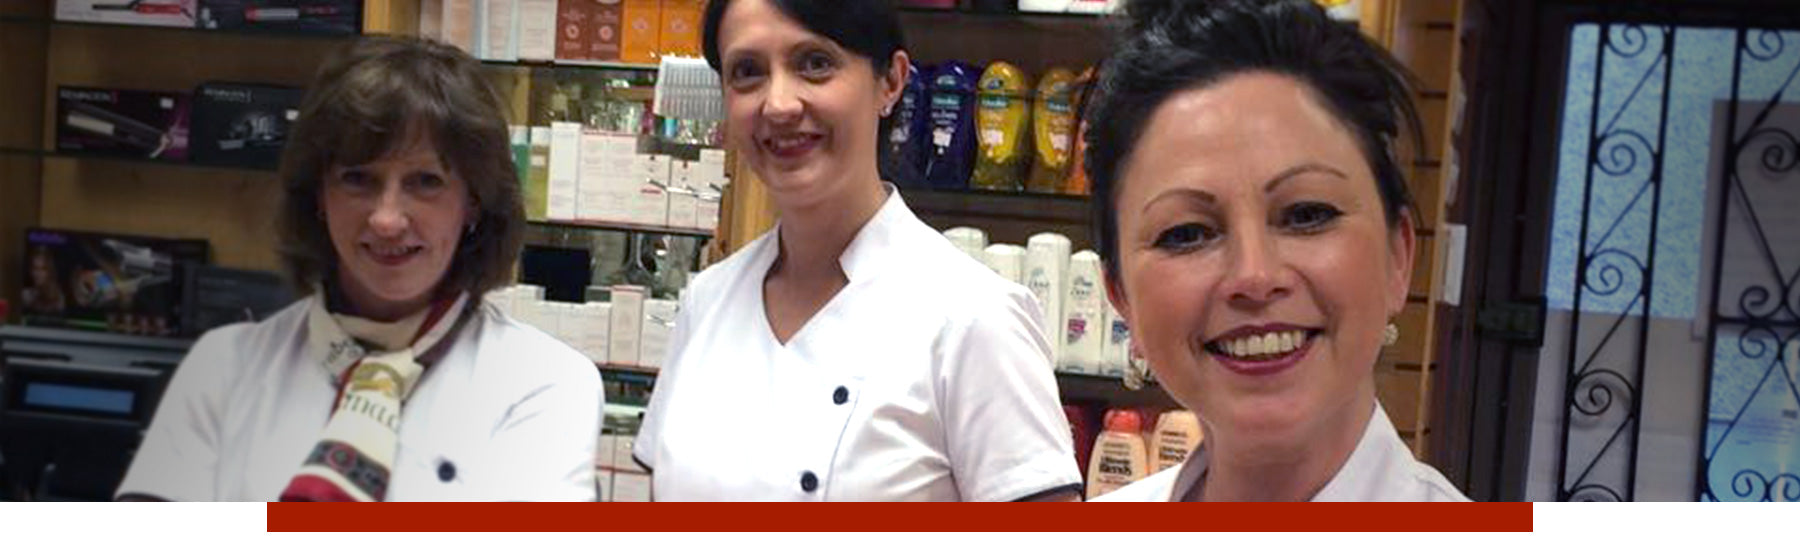 McElwee Pharmacy helpful Staff